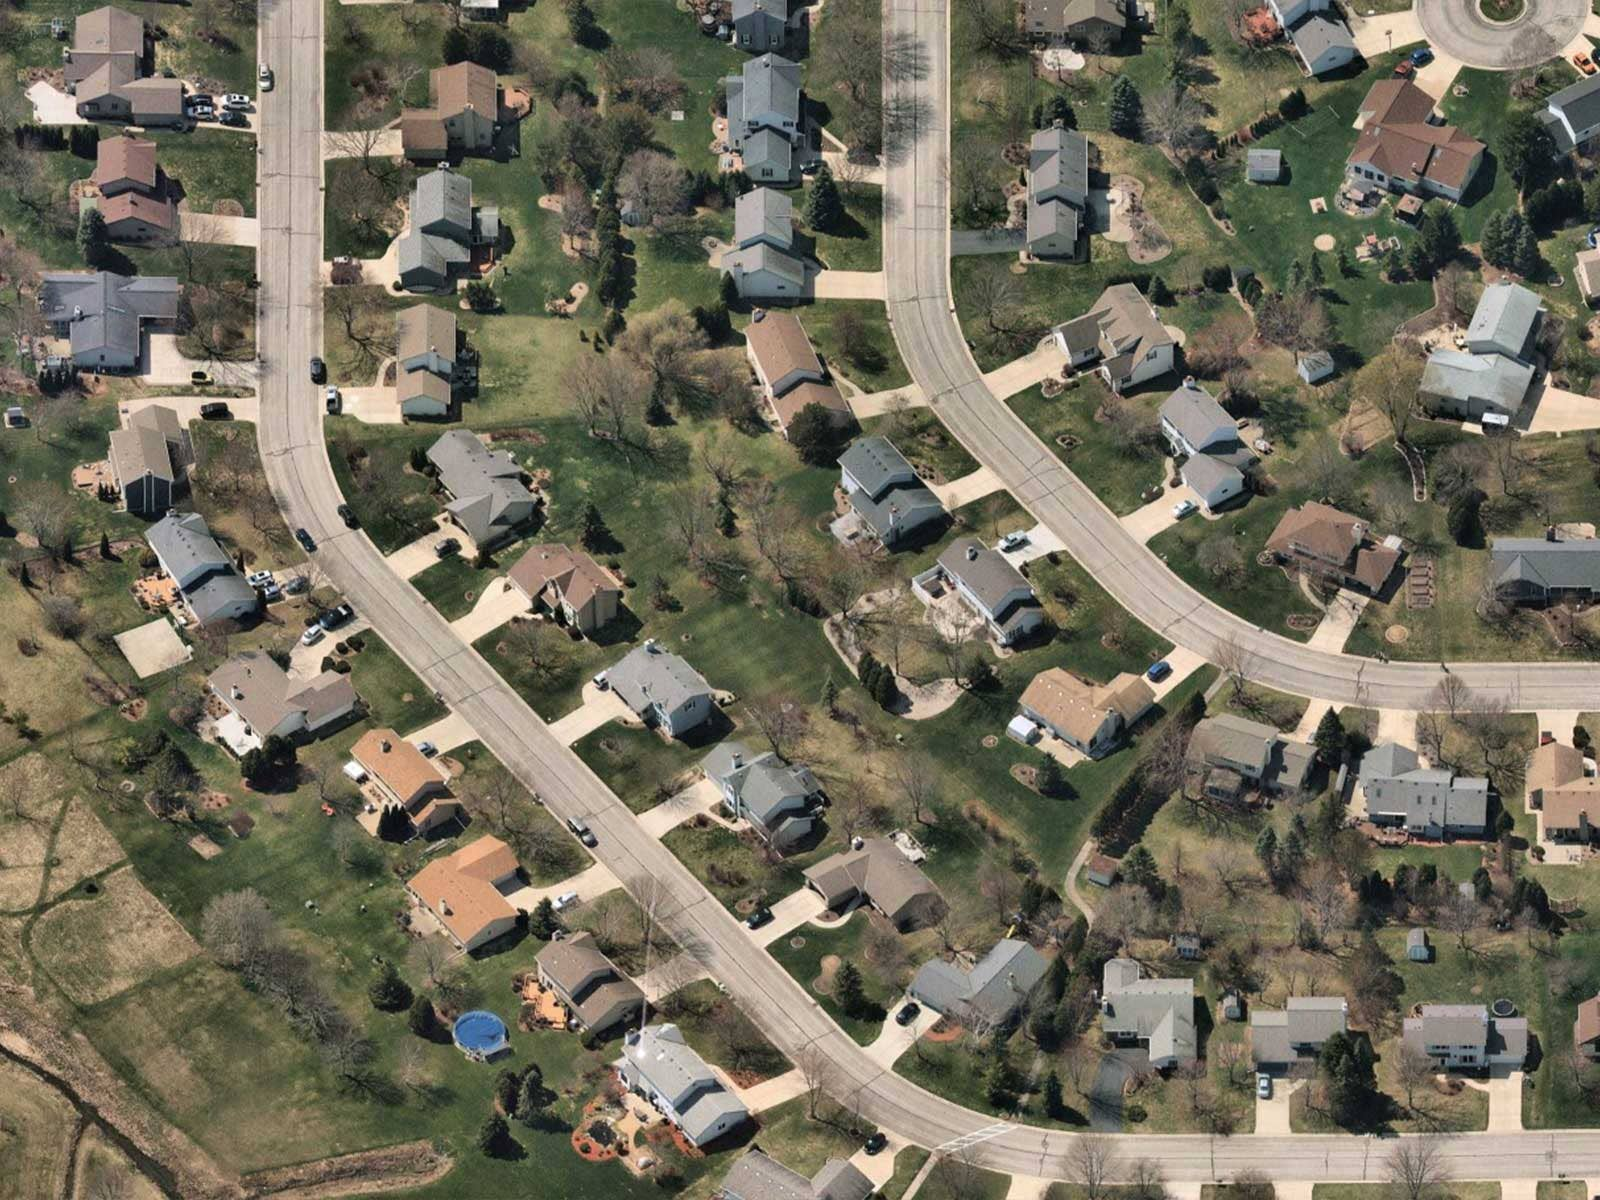 Oblique aerial image of suburban housing in Mequon, Wisconsin